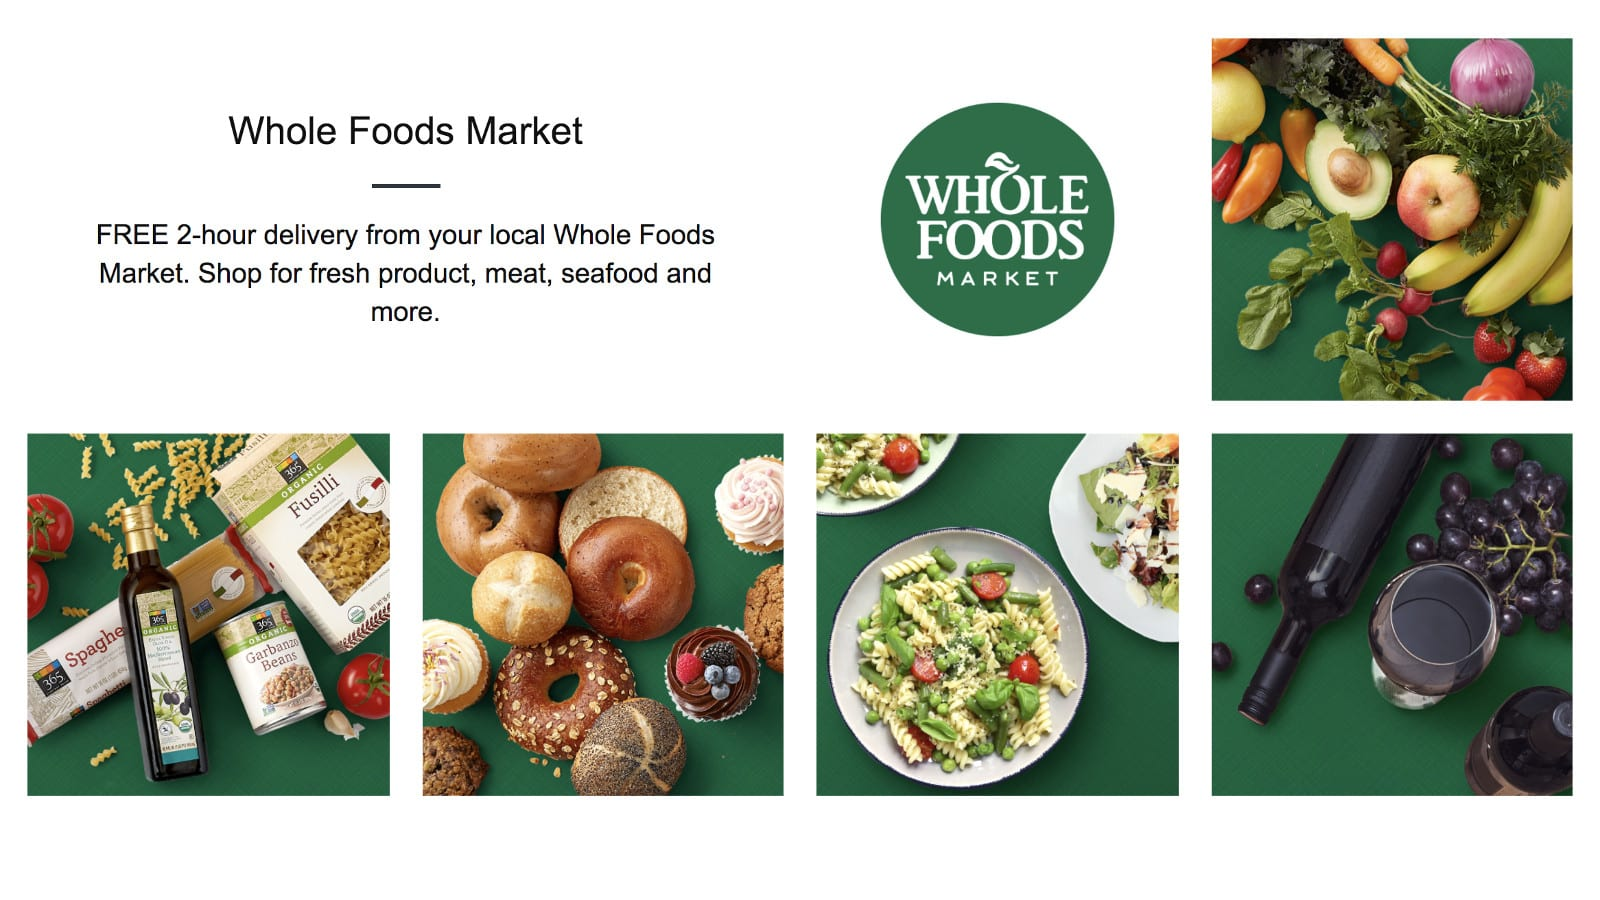 Amazon now delivers Whole Foods products to your home in two